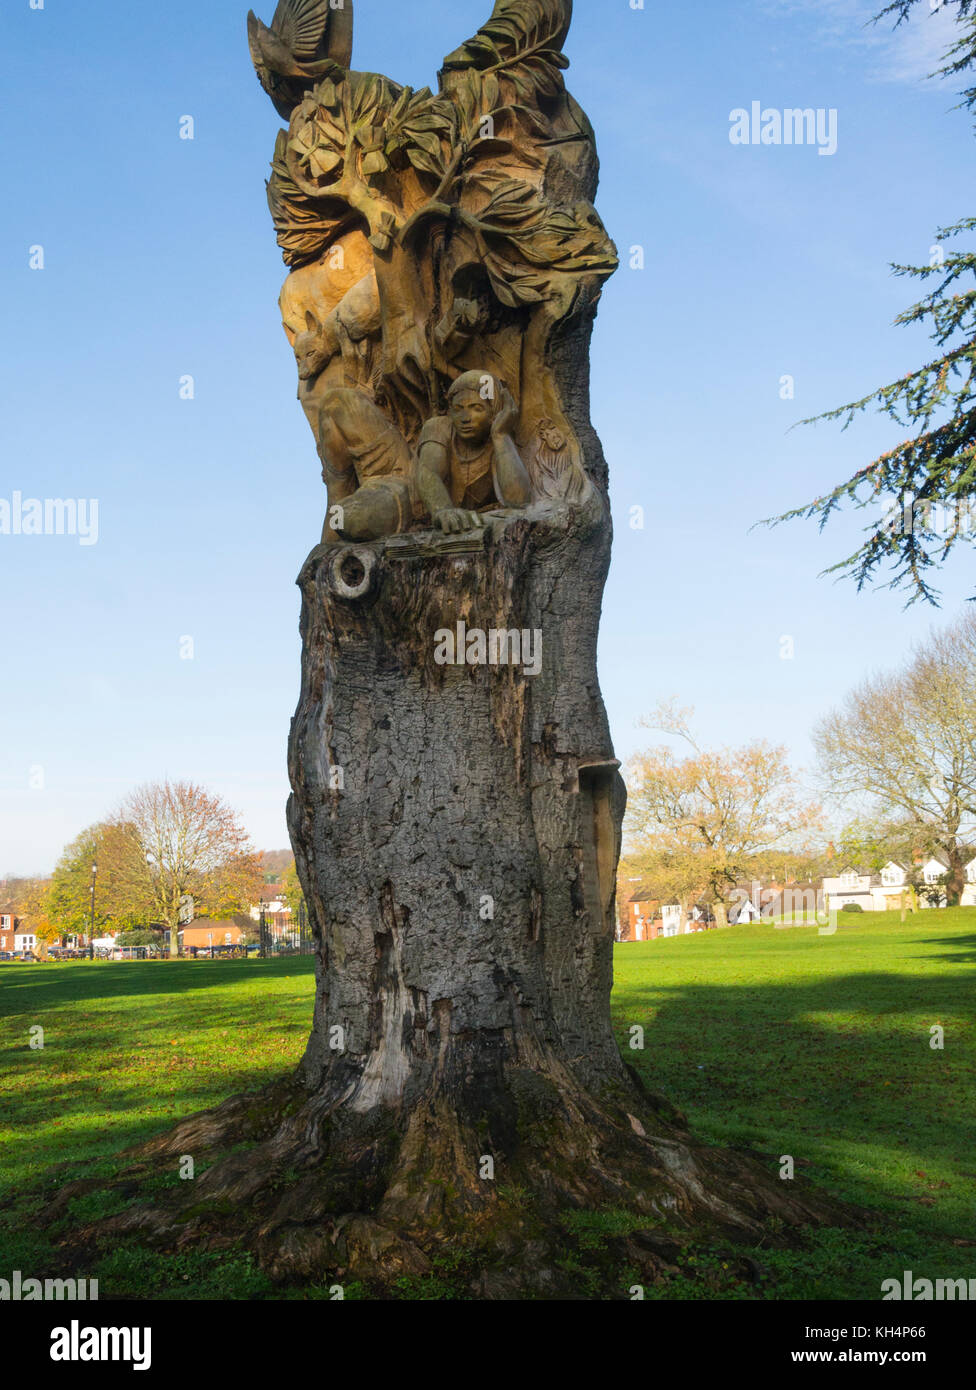 Leafing Through History beech trunk carving by Tom Harvey 2007 Abbey Gardens Pershore Worcestershire England UK - Stock Image